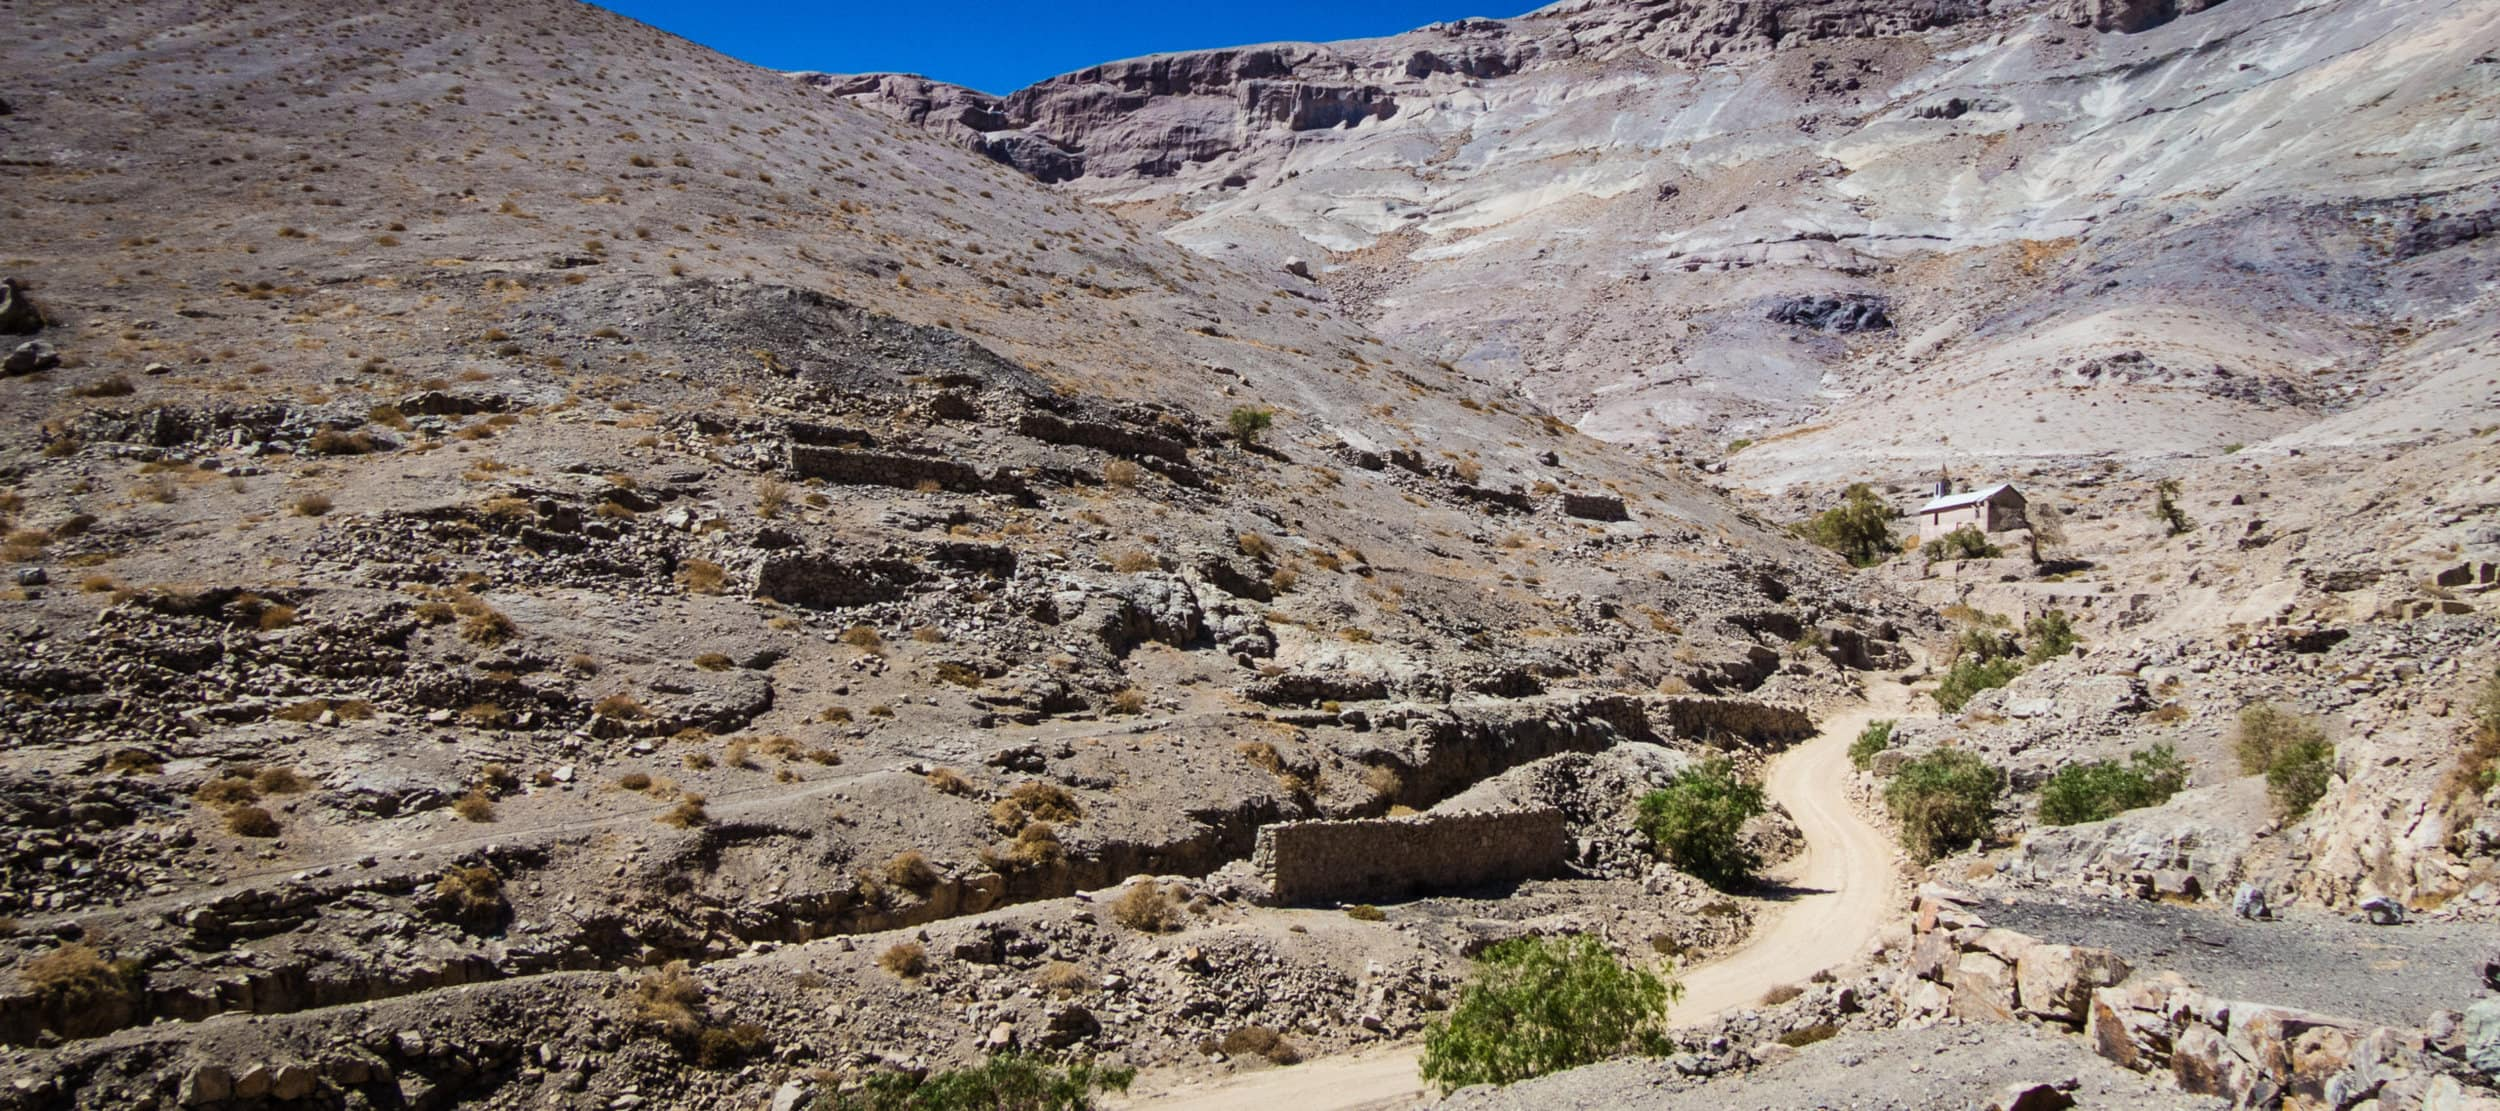 Cerro Blanco ghost mining town, Chile. Cousin Jack would have found it hot here!